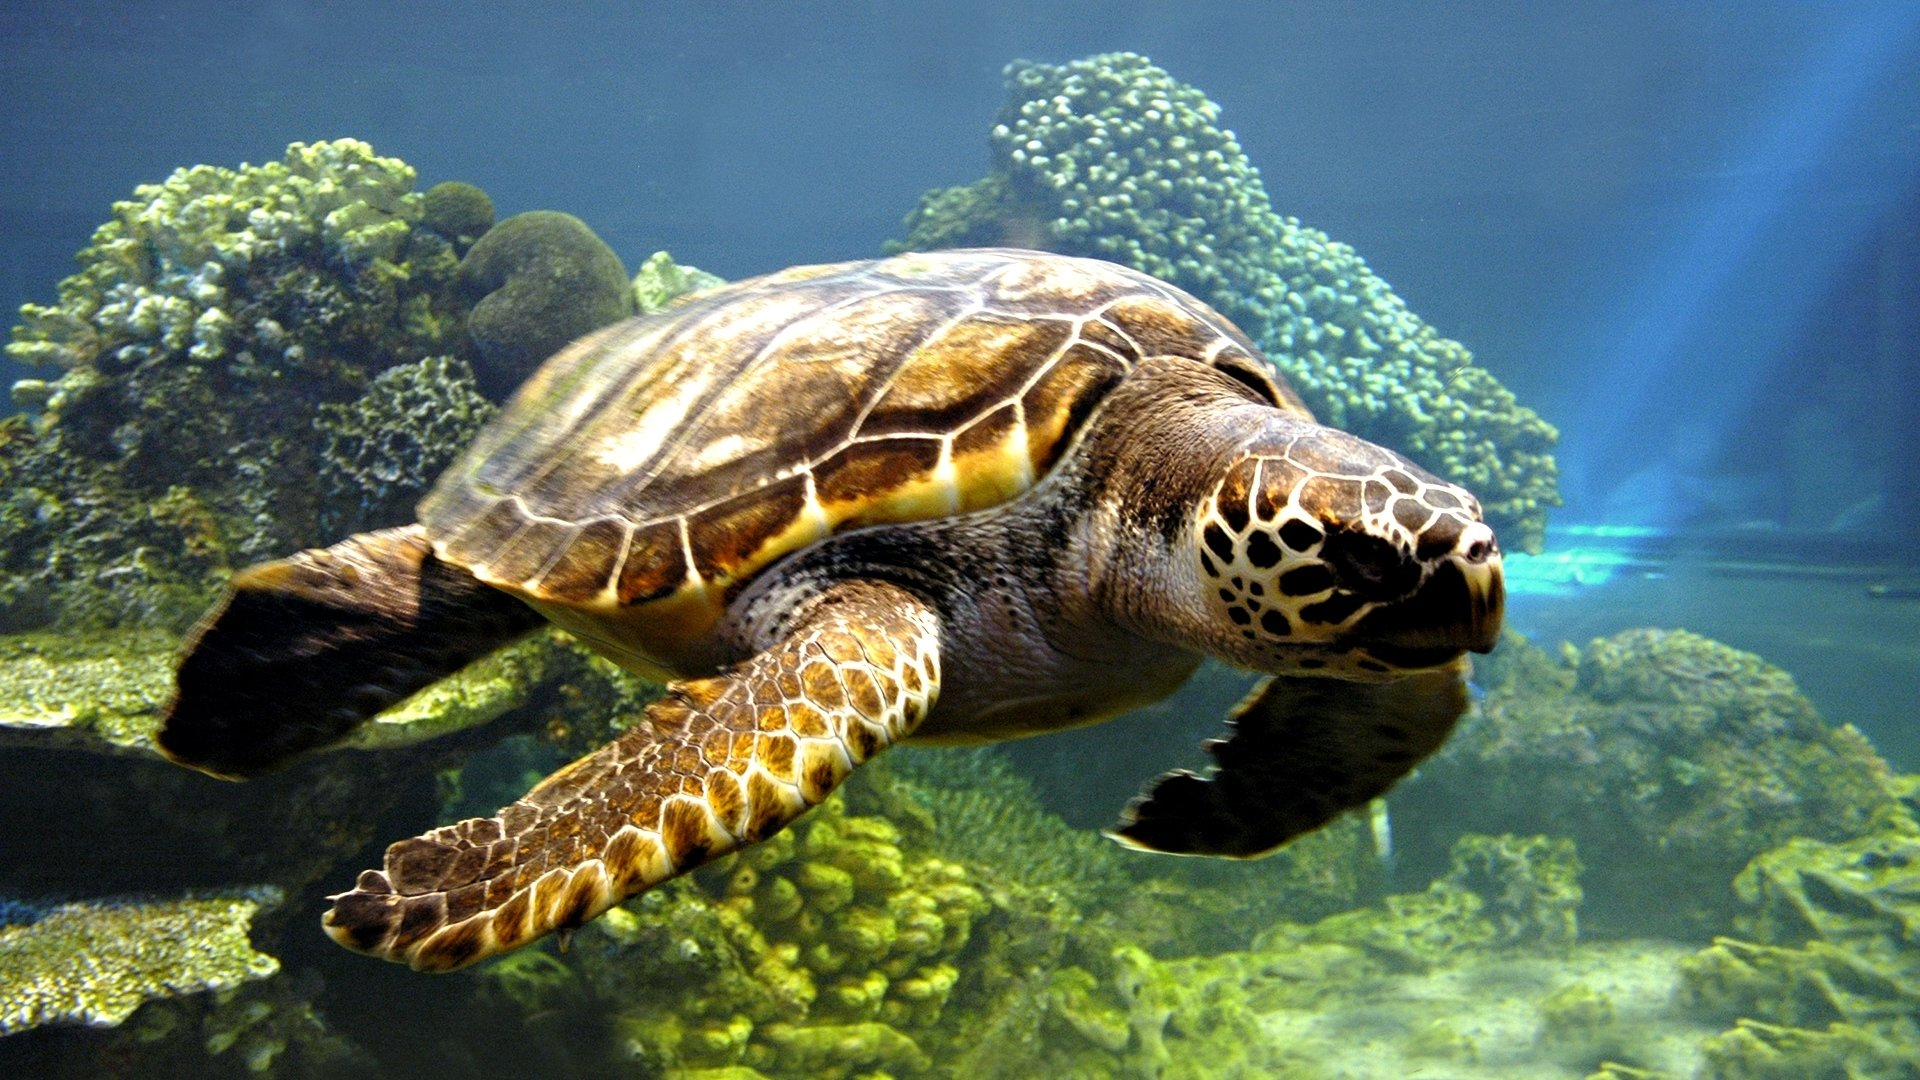 Free Turtle high quality wallpaper ID:29776 for full hd desktop